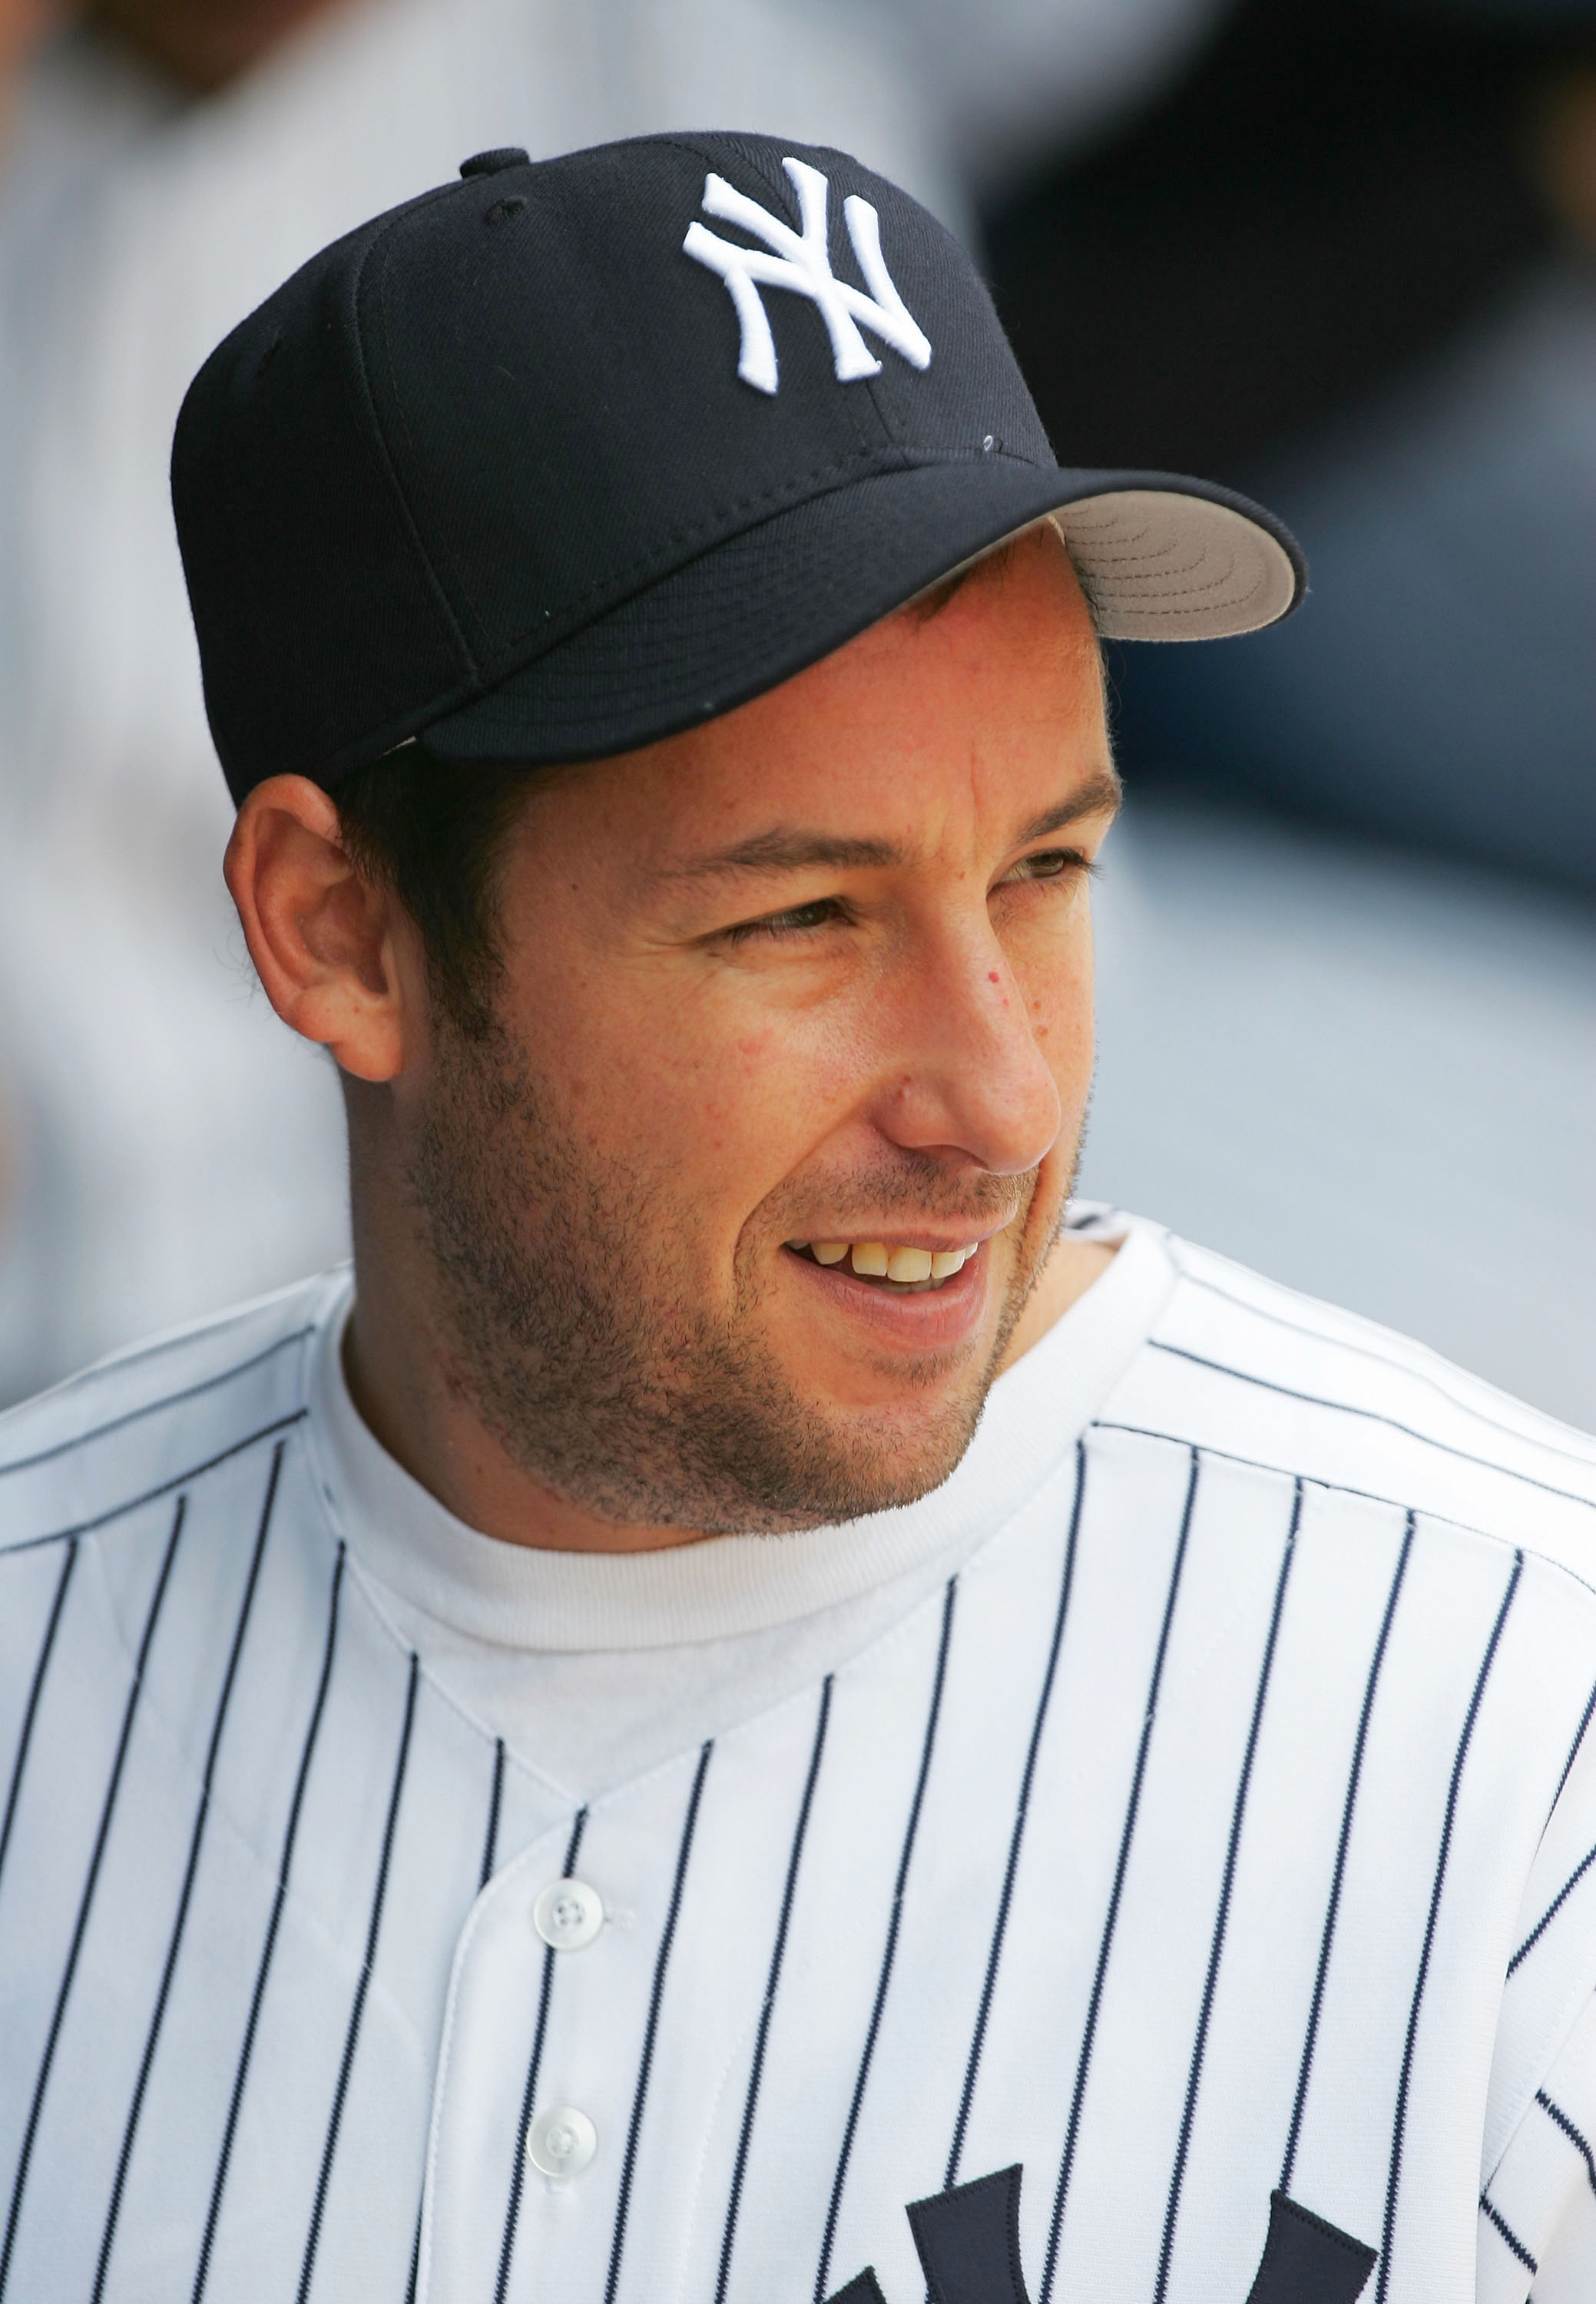 NEW YORK - MAY 28:  Actor Adam Sandler looks on from the dugout before throwing out the ceremonial first pitch in honor of his new film, 'The Longest Yard' which opened this weekend before the start of the game between New York Yankees and the Boston Red